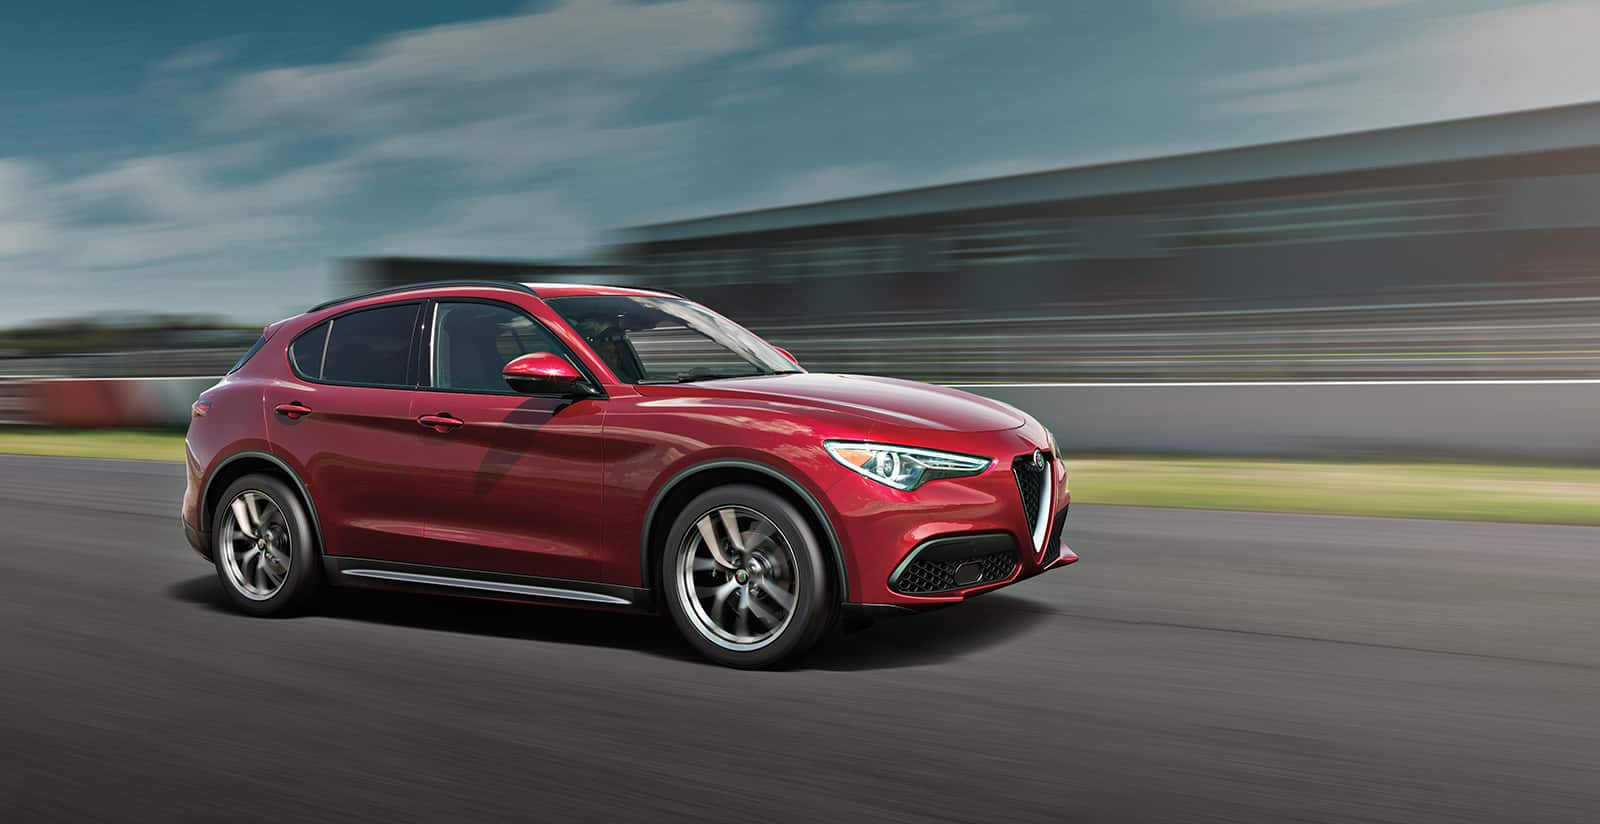 2018 alfa romeo stelvio - high performance suv - alfa romeo usa